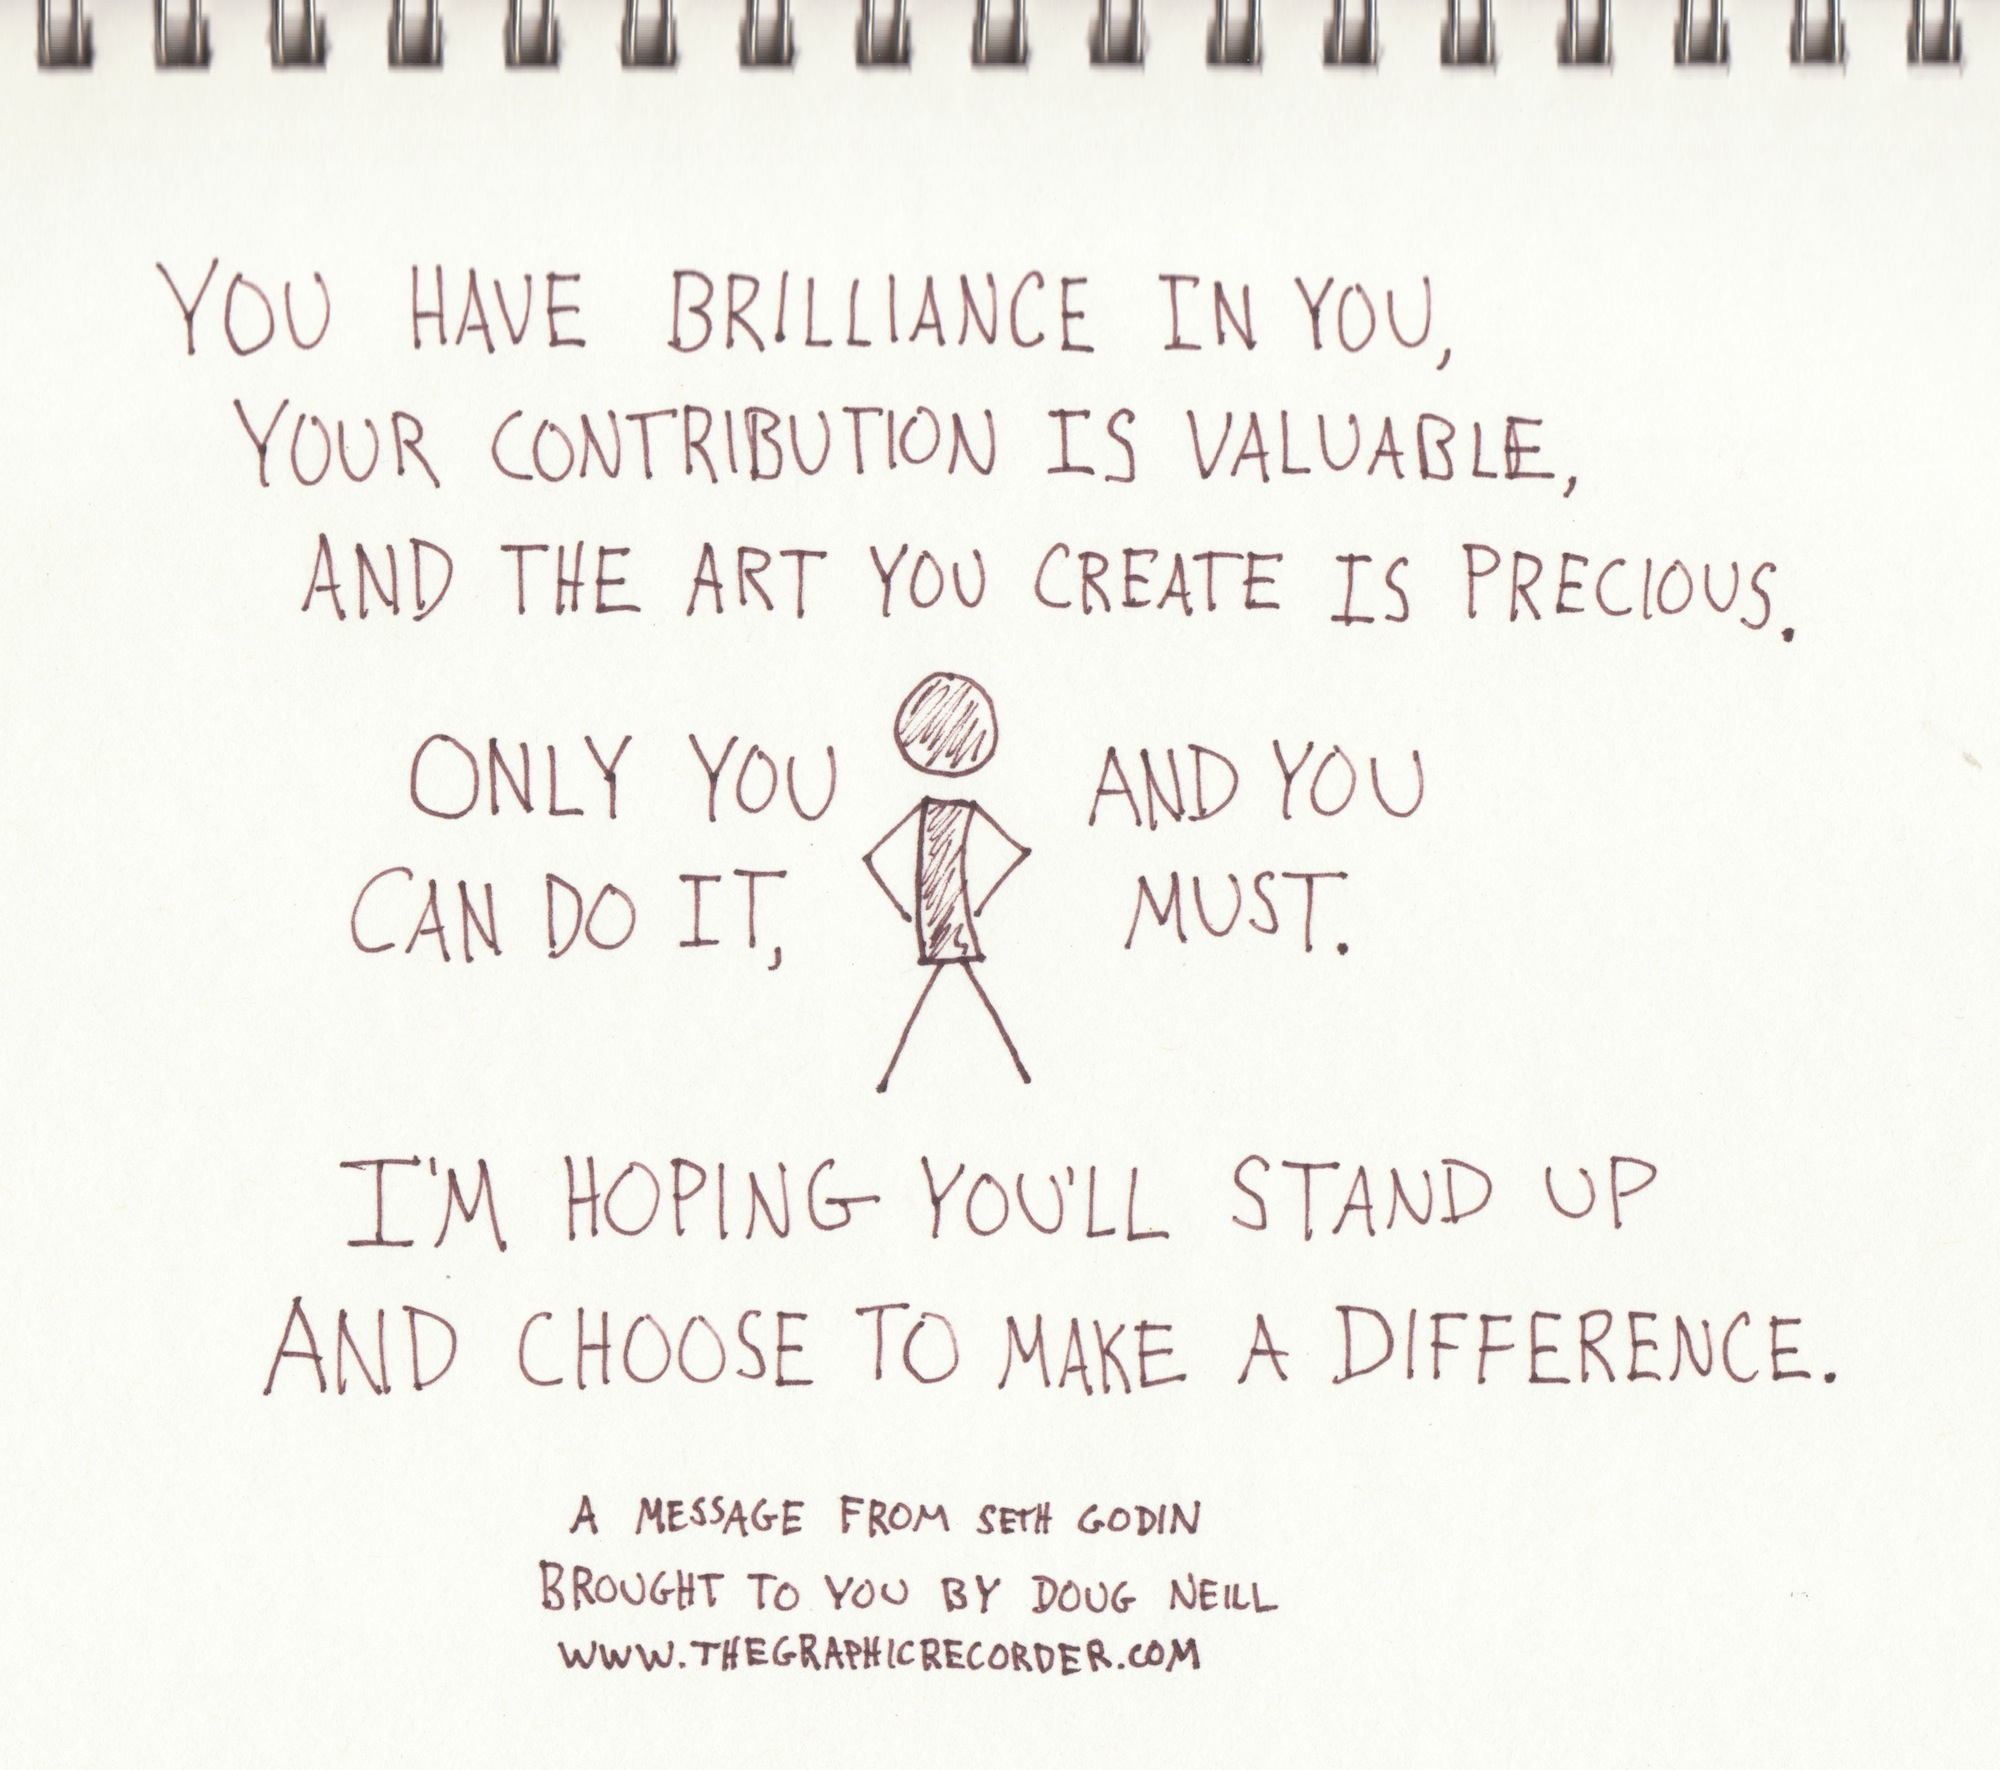 The Graphic Recorder - Doug Neill - You Have Brilliance In You - Seth Godin - Linchpin